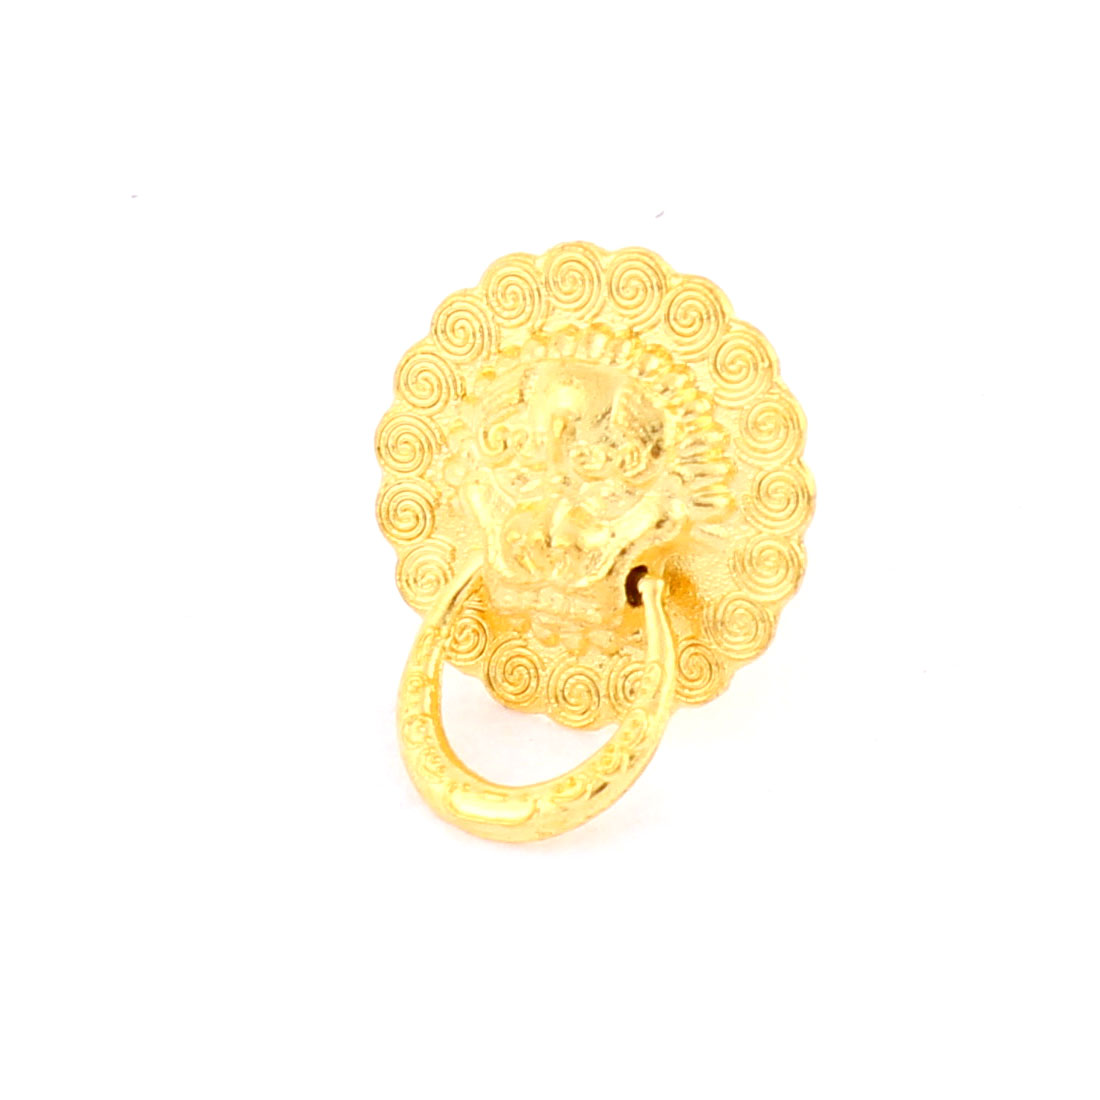 Dresser Cupboard Door Lion Head Shaped Pull Handle Ring Gold Tone 8mm Hole Dia